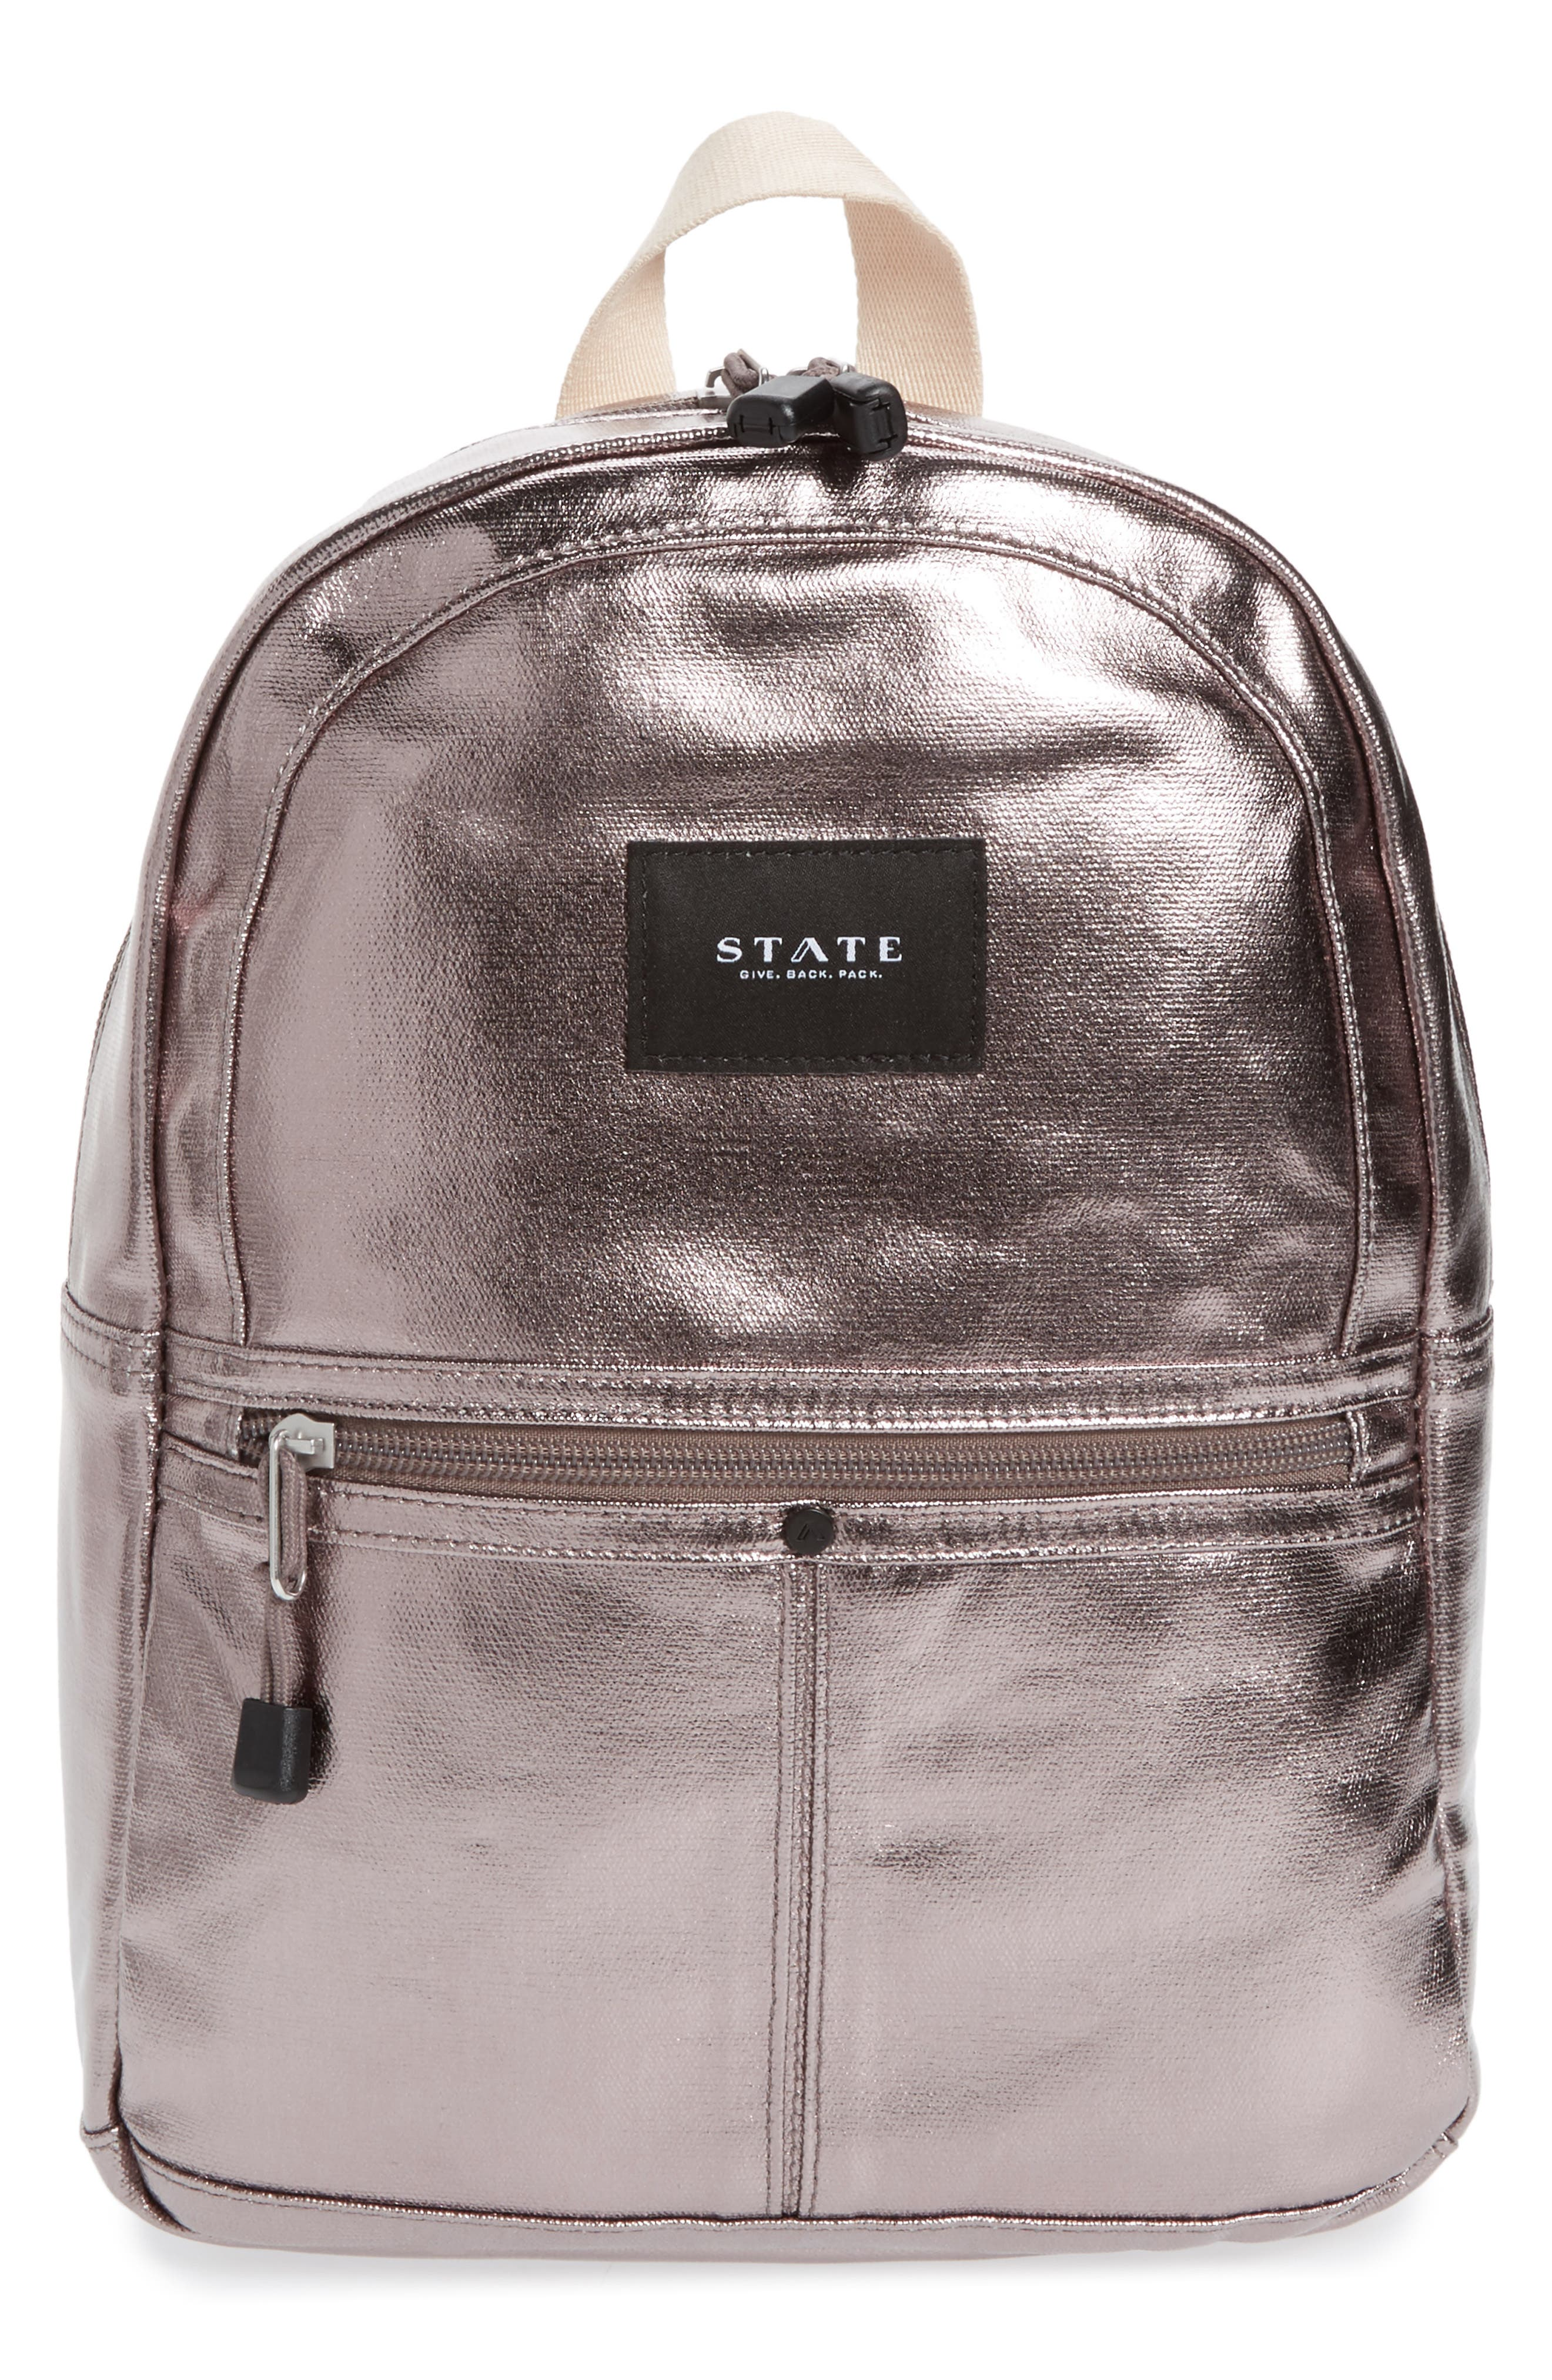 Mini Kane Backpack,                             Main thumbnail 1, color,                             Chrome